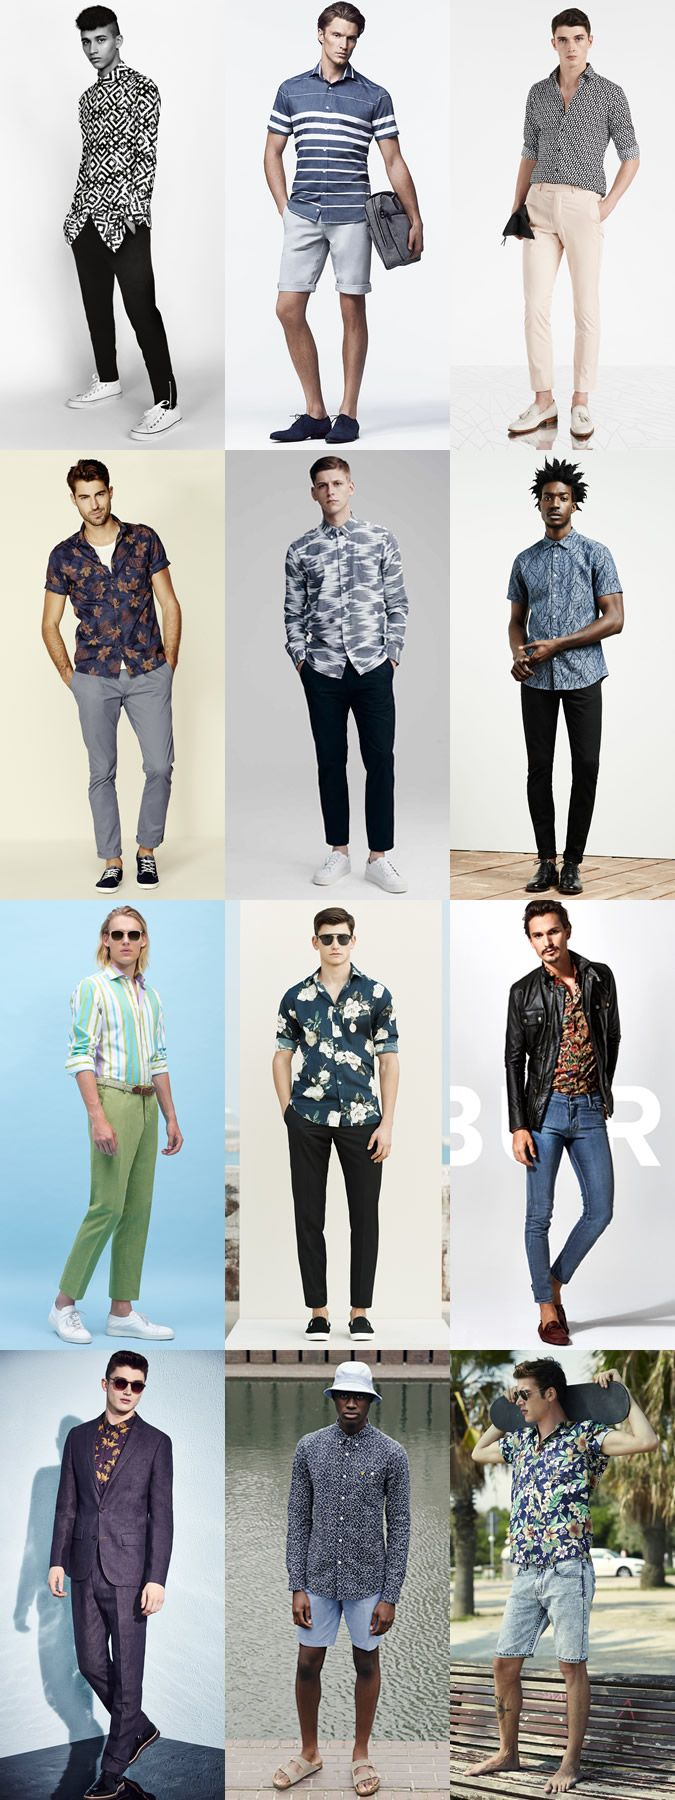 5 Key Menswear Pieces For Spring/Summer 2015 : 2. The Printed Shirt Lookbook Inspiration